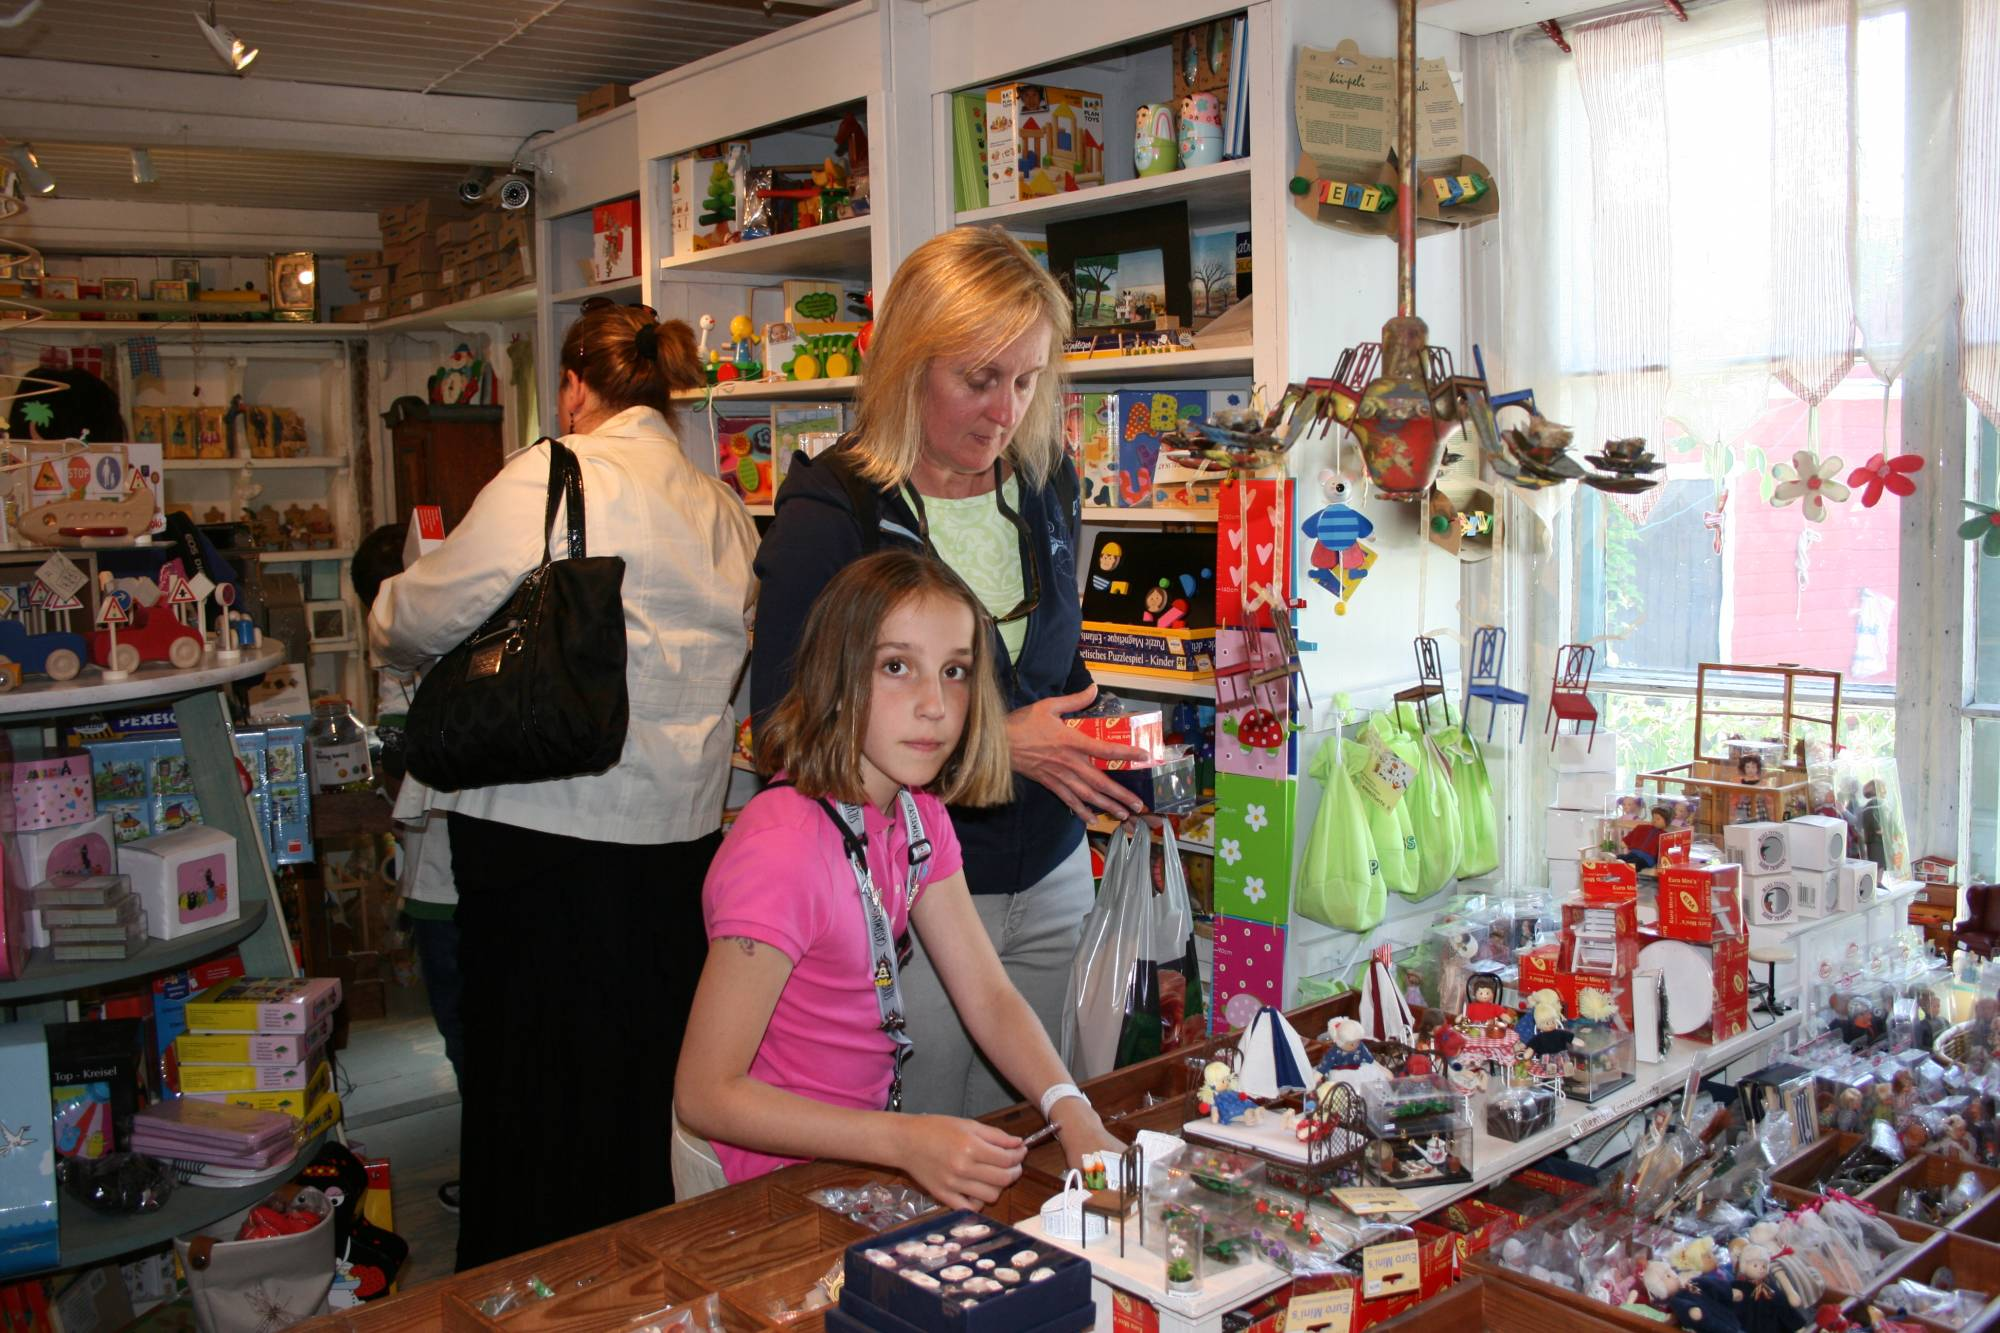 Checking out the doll house furniture at Riimikko Toy Store, Porvoo, Finlan